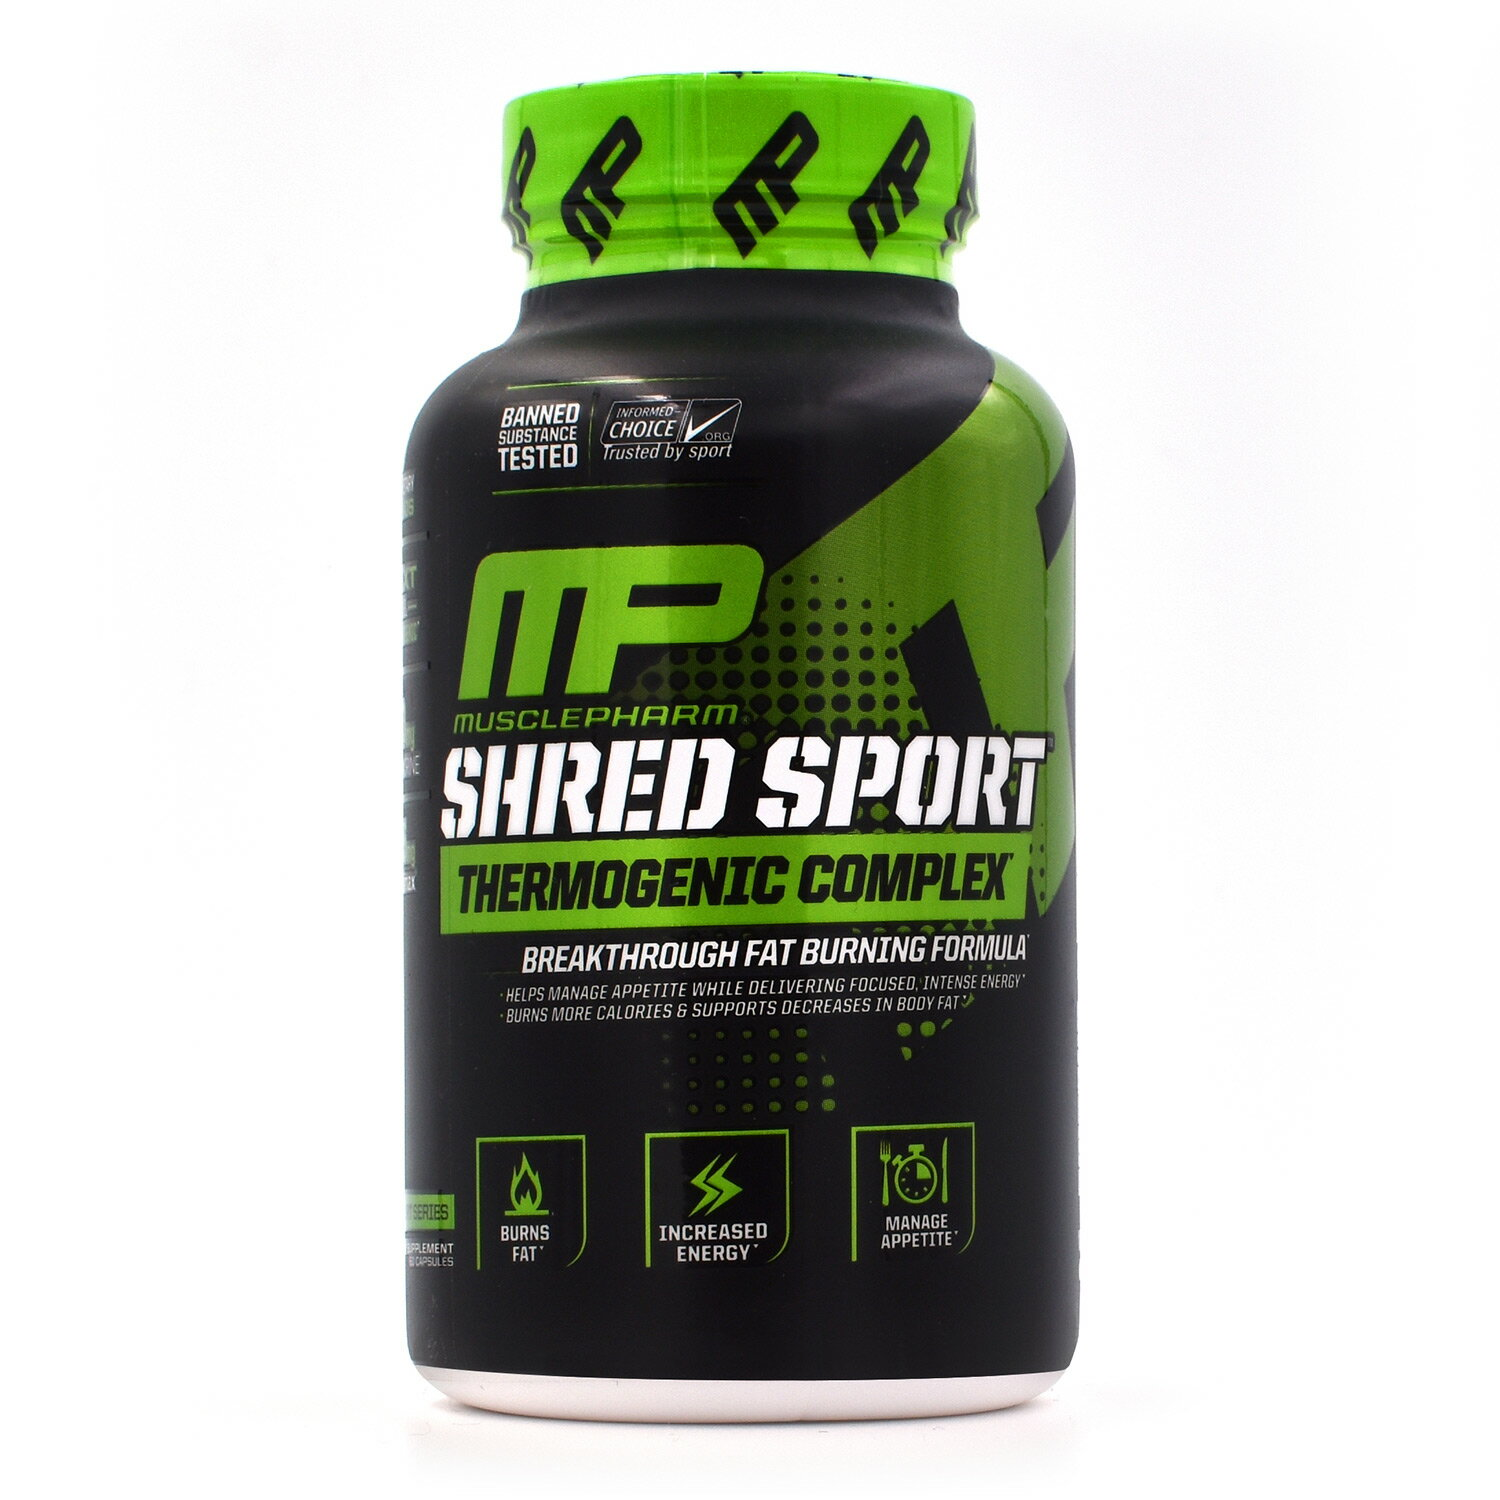 Muscle Pharm Shred Sport Thermogenic Complex Weight Loss Formula 60 Capsules